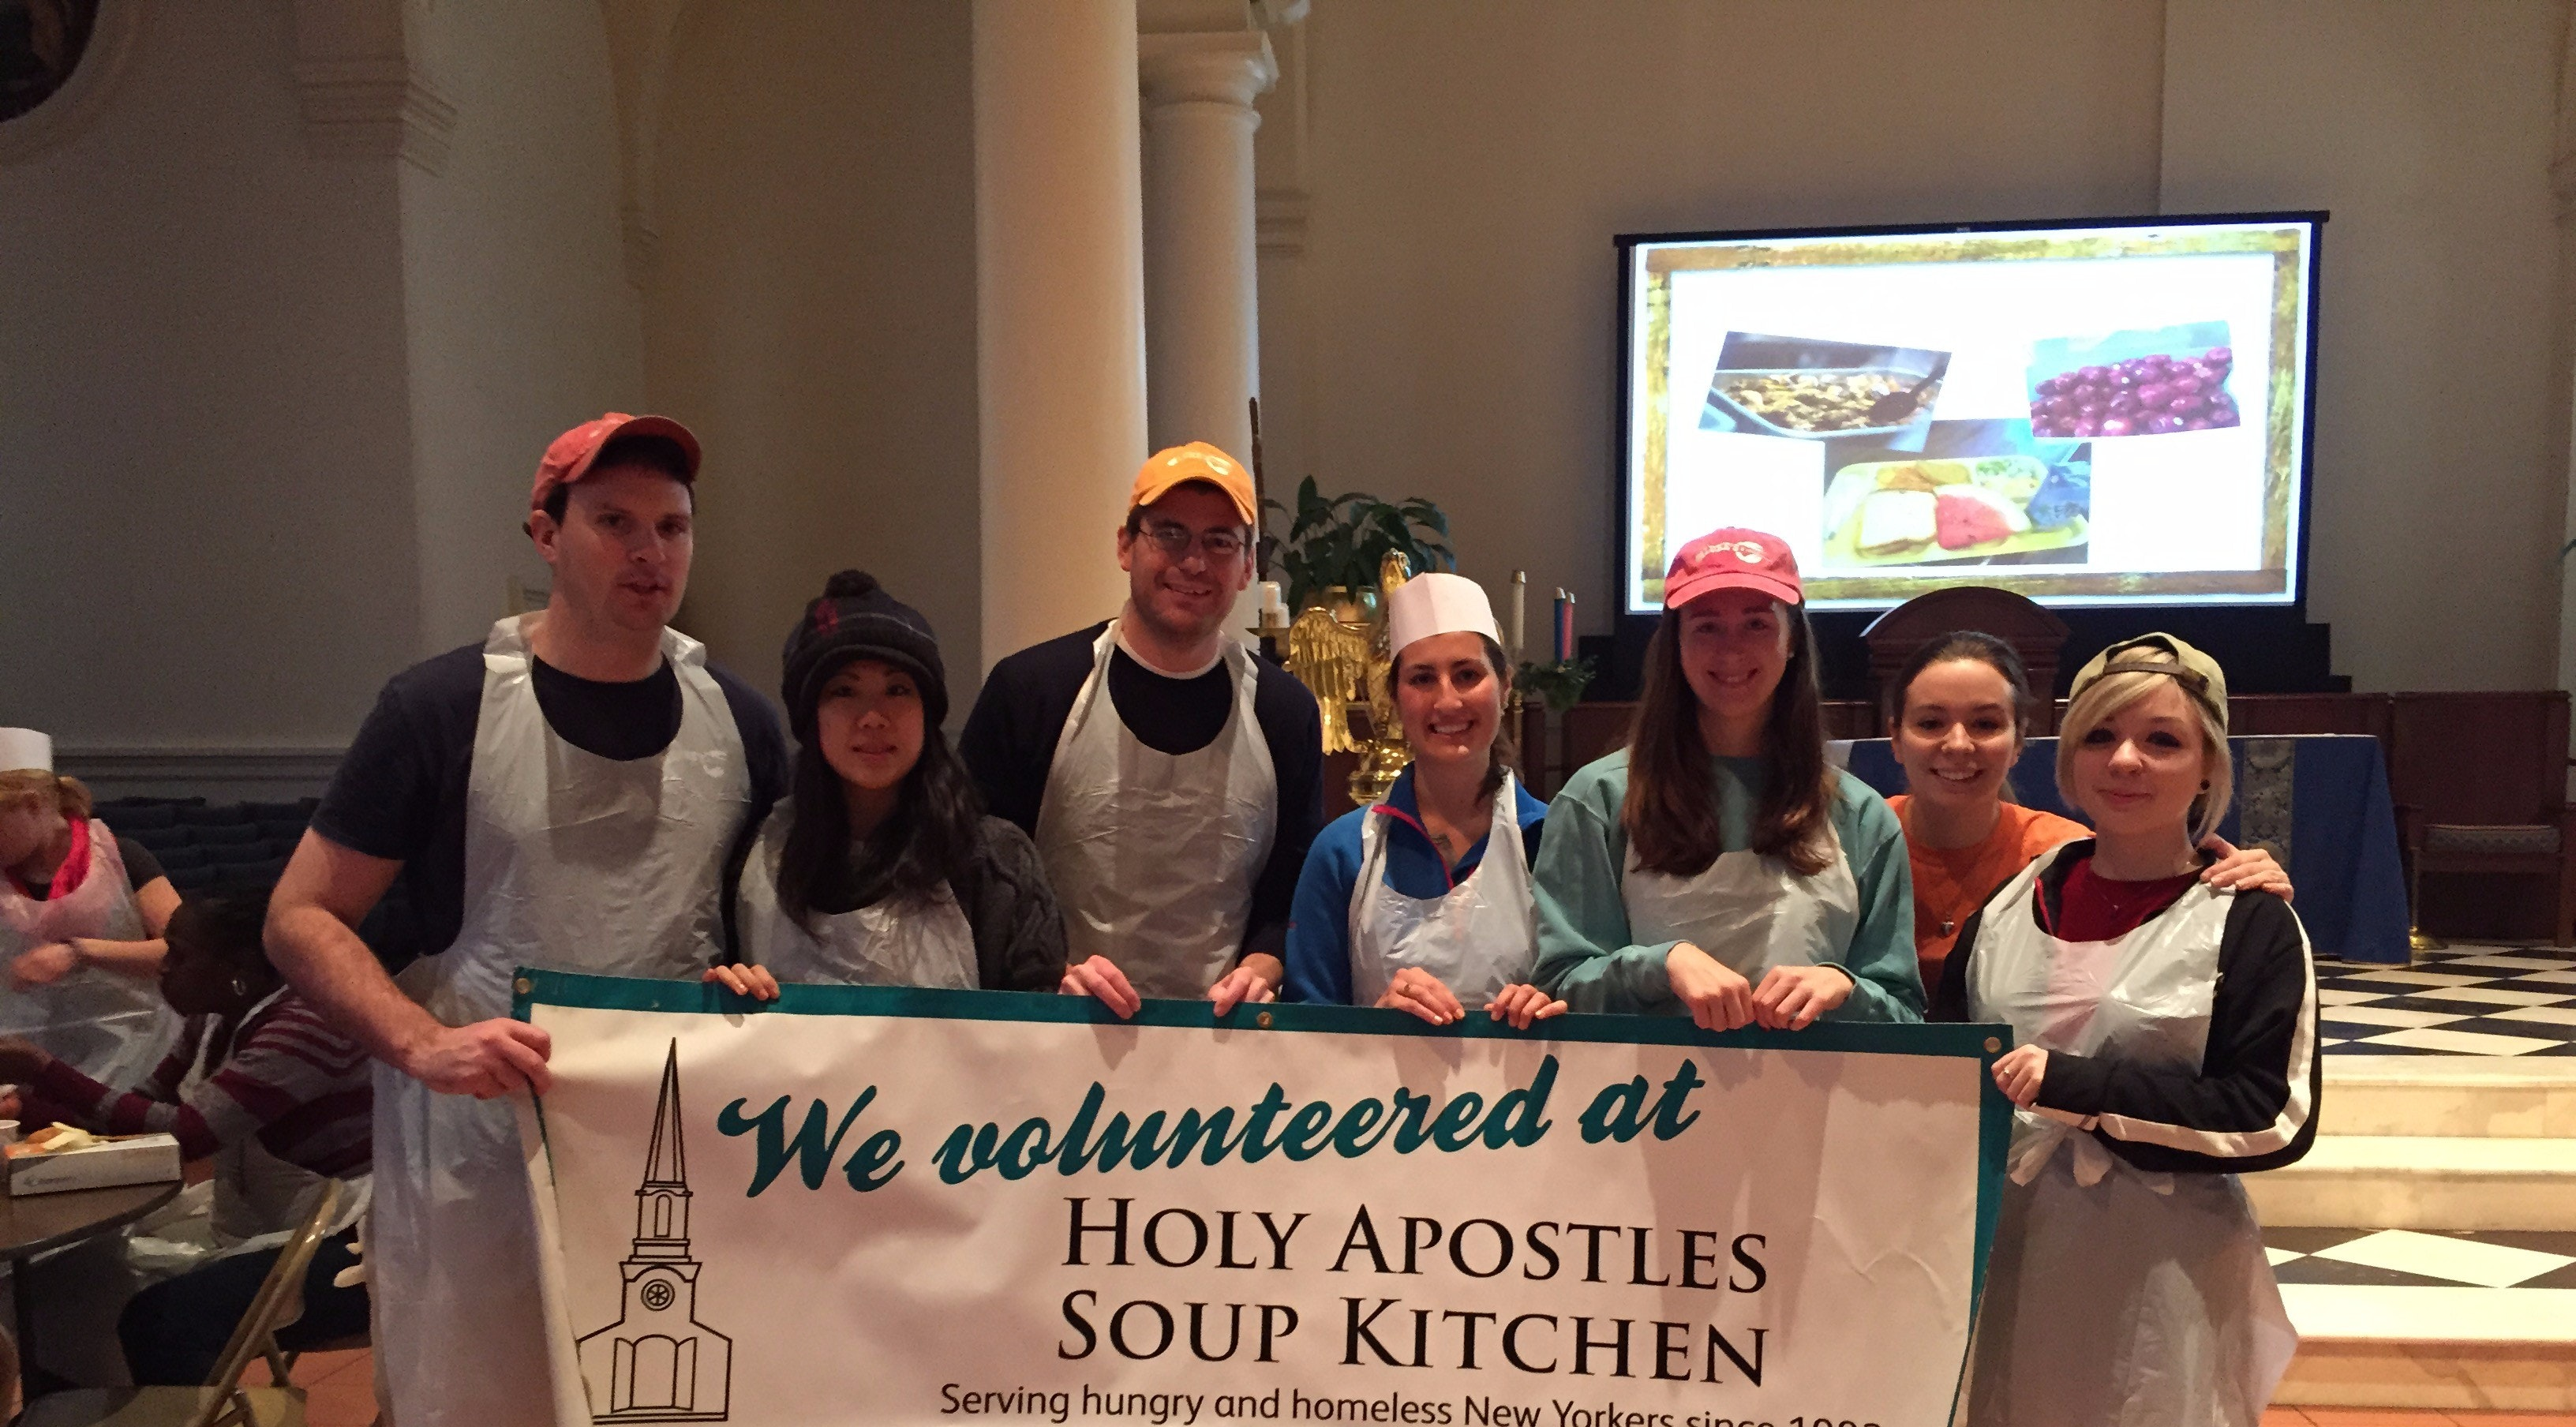 holy apostles soup kitchen brothers for excellence member abby